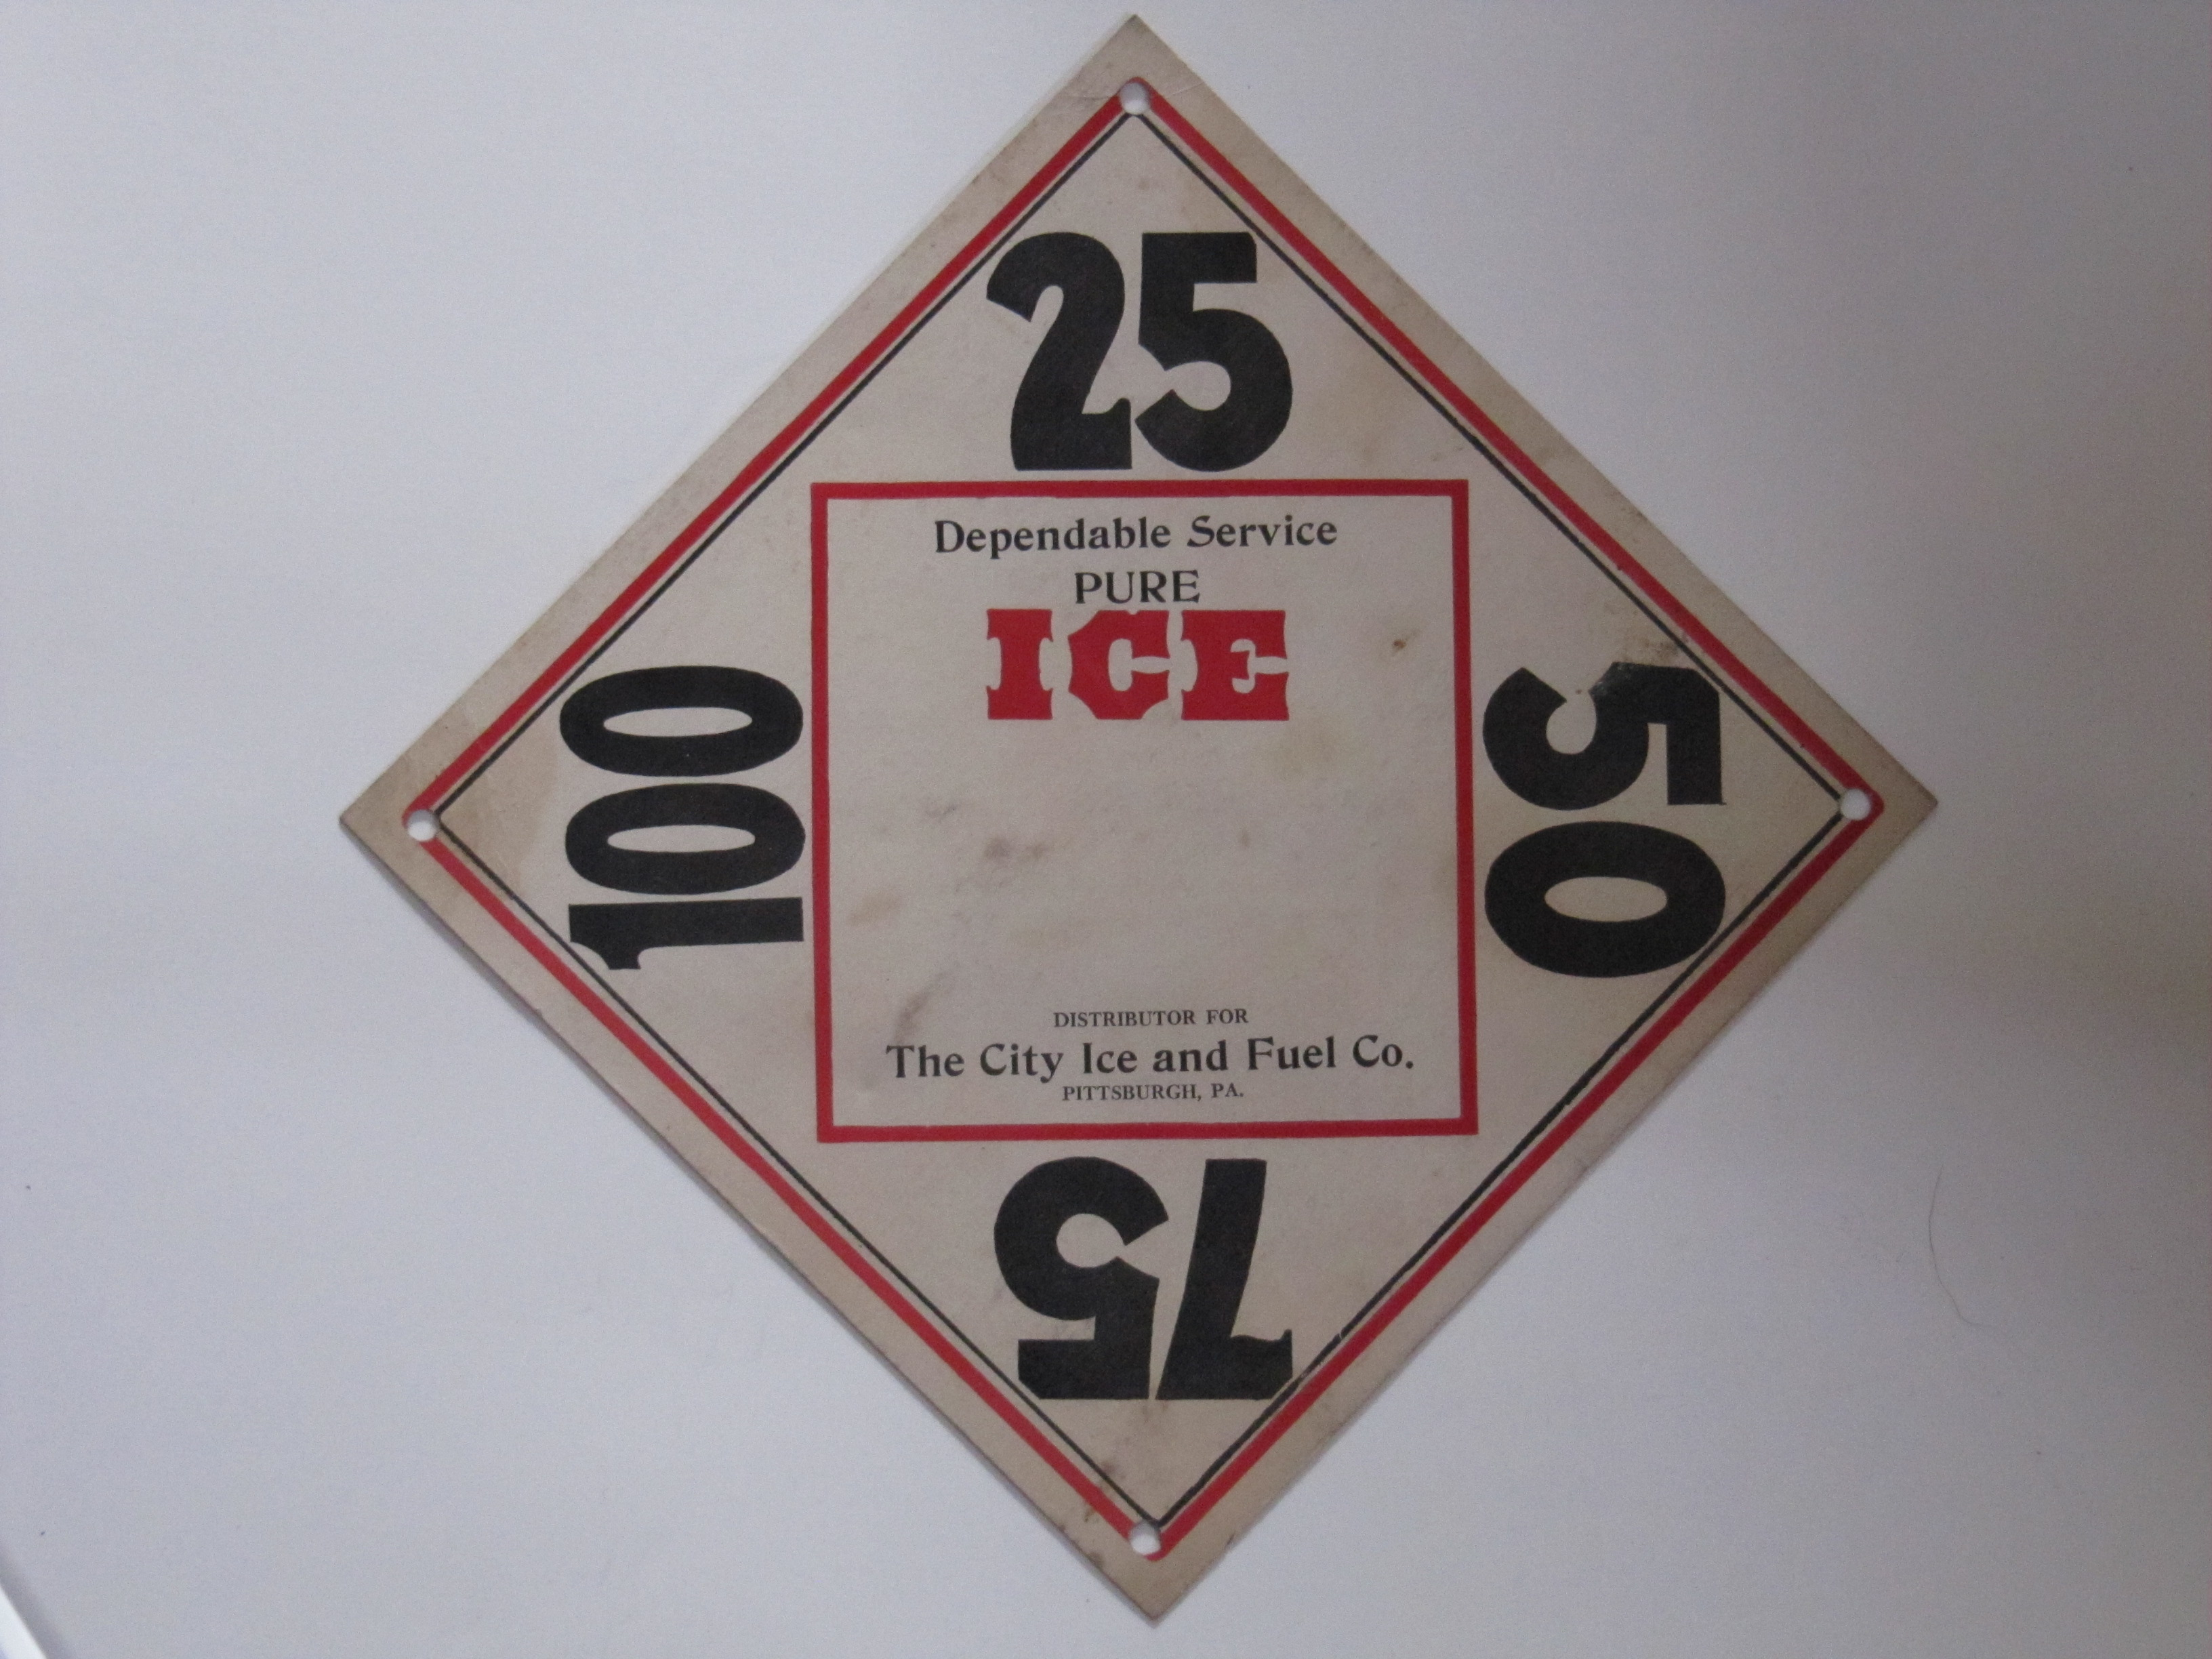 The City Ice & Fuel Co.